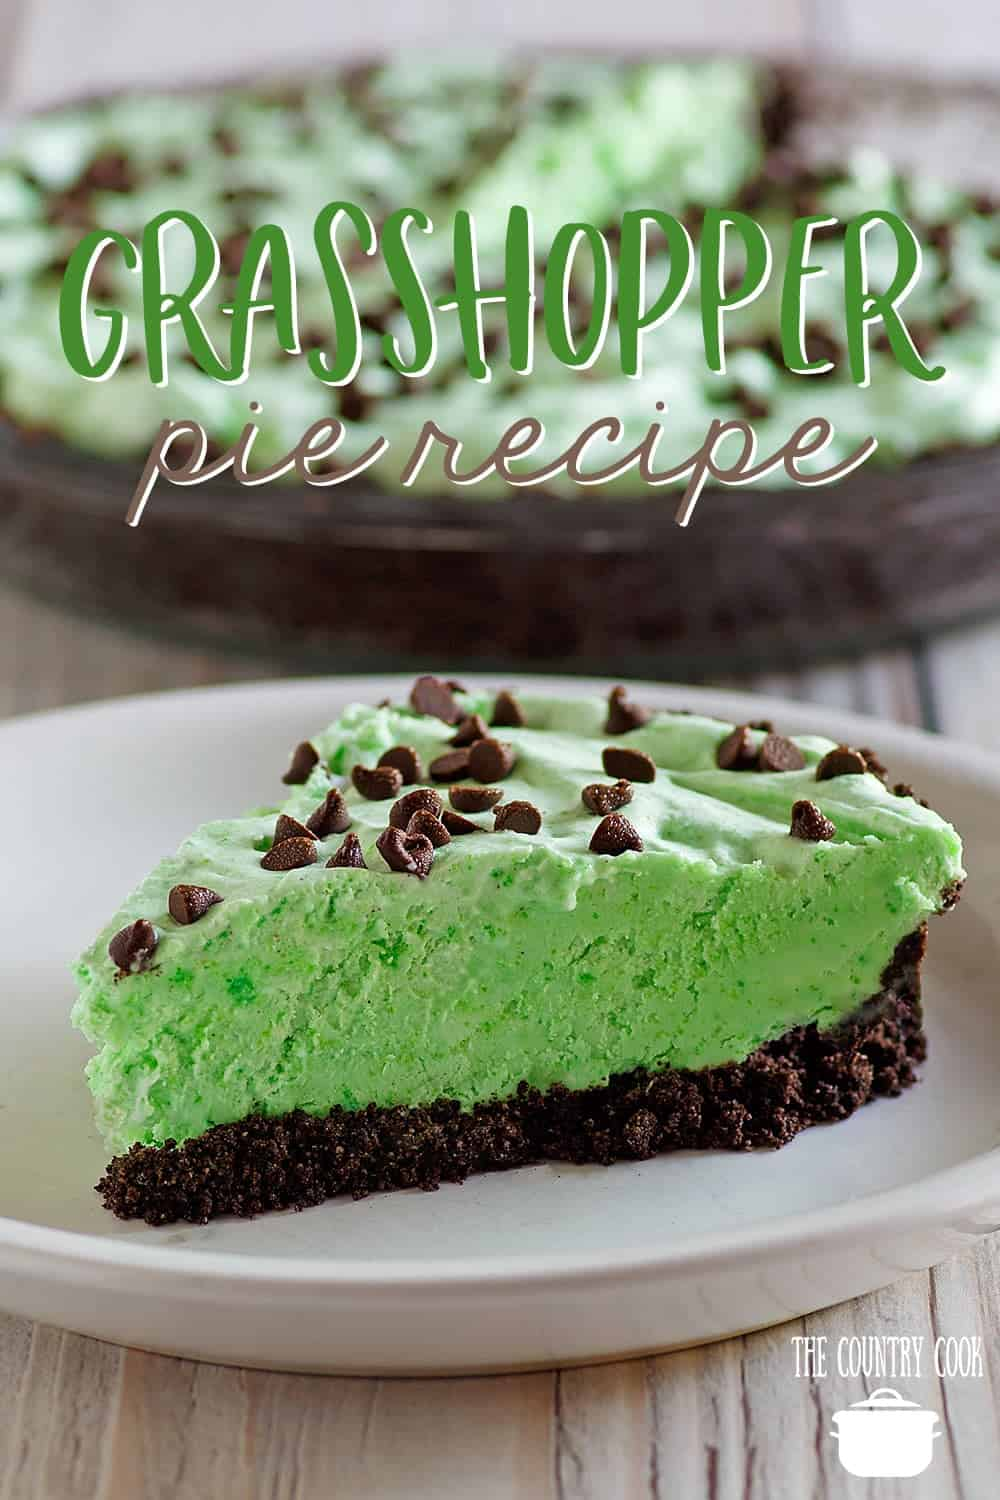 No Bake Grasshopper Pie recipe from The Country Cook